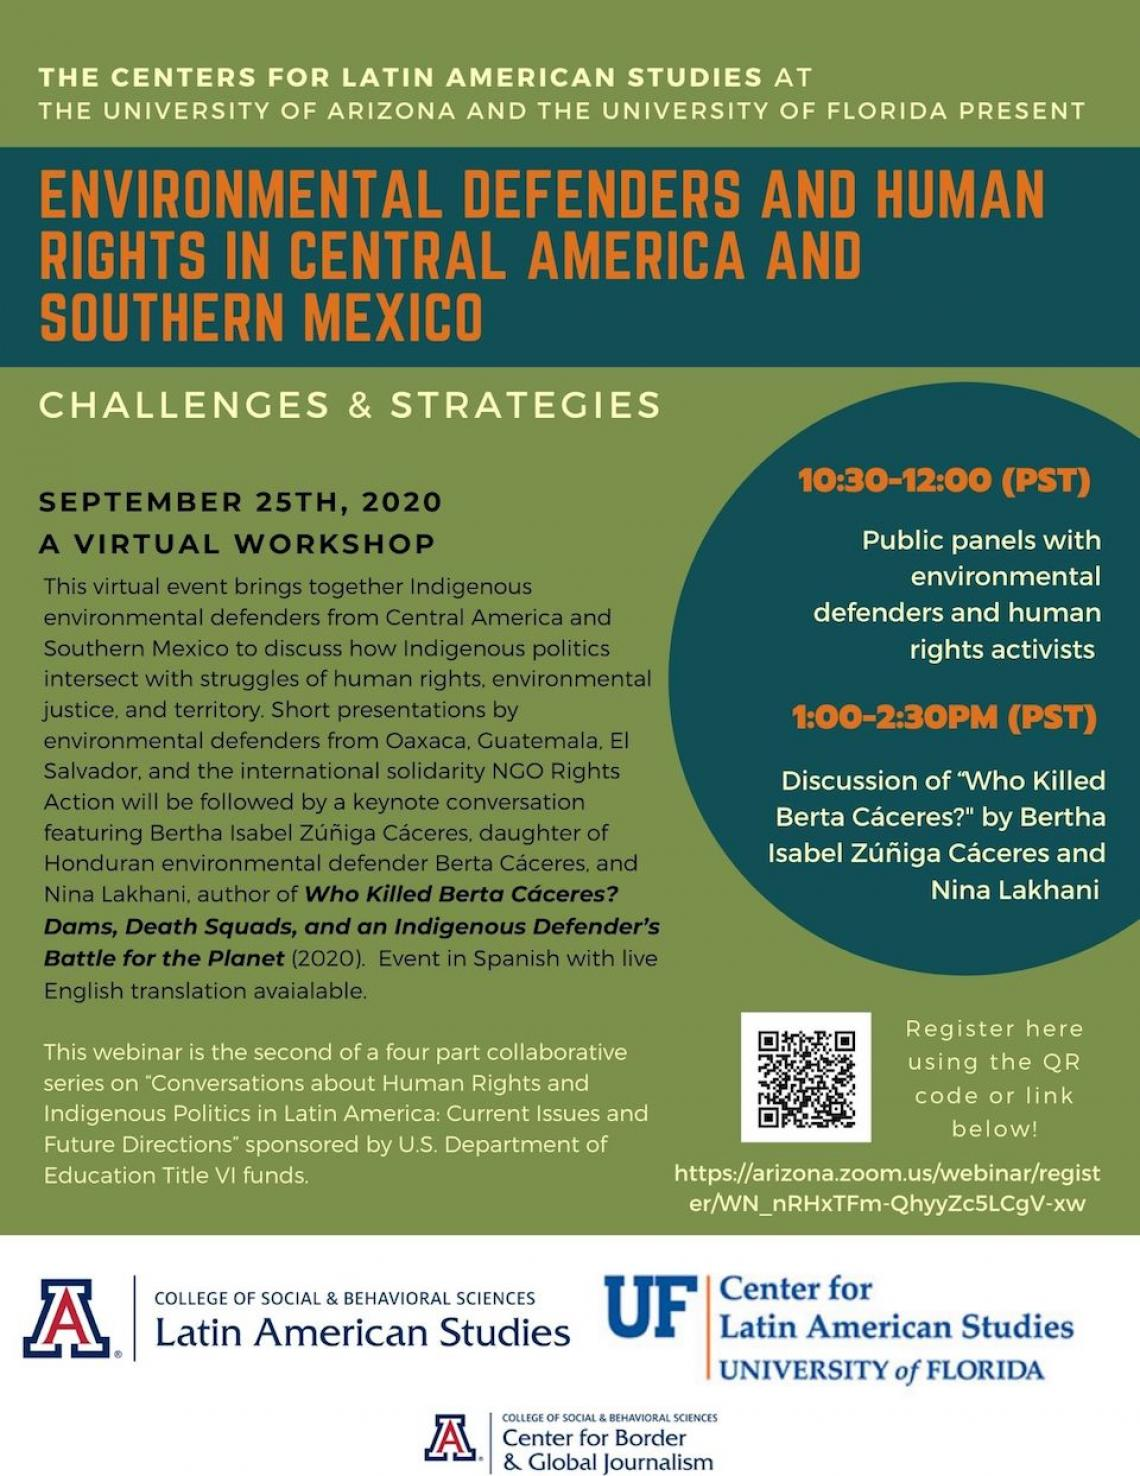 Environmental Defenders and Human Rights in Central America and Southern Mexico